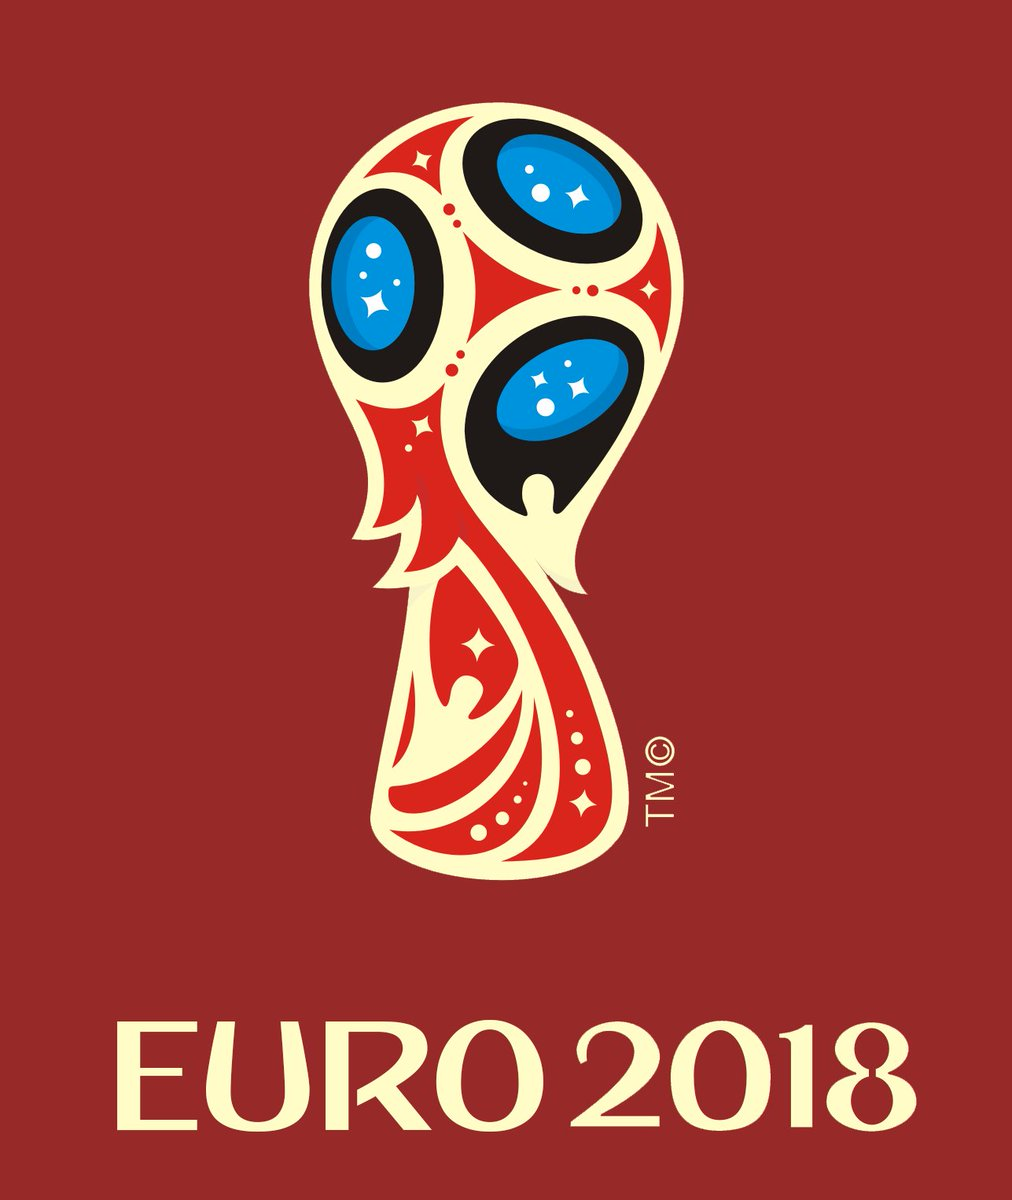 Fra Bel Rus Cro Swe Eng Welcome To The Euro Worldcup 2018pic Twitter Fb23kucbri